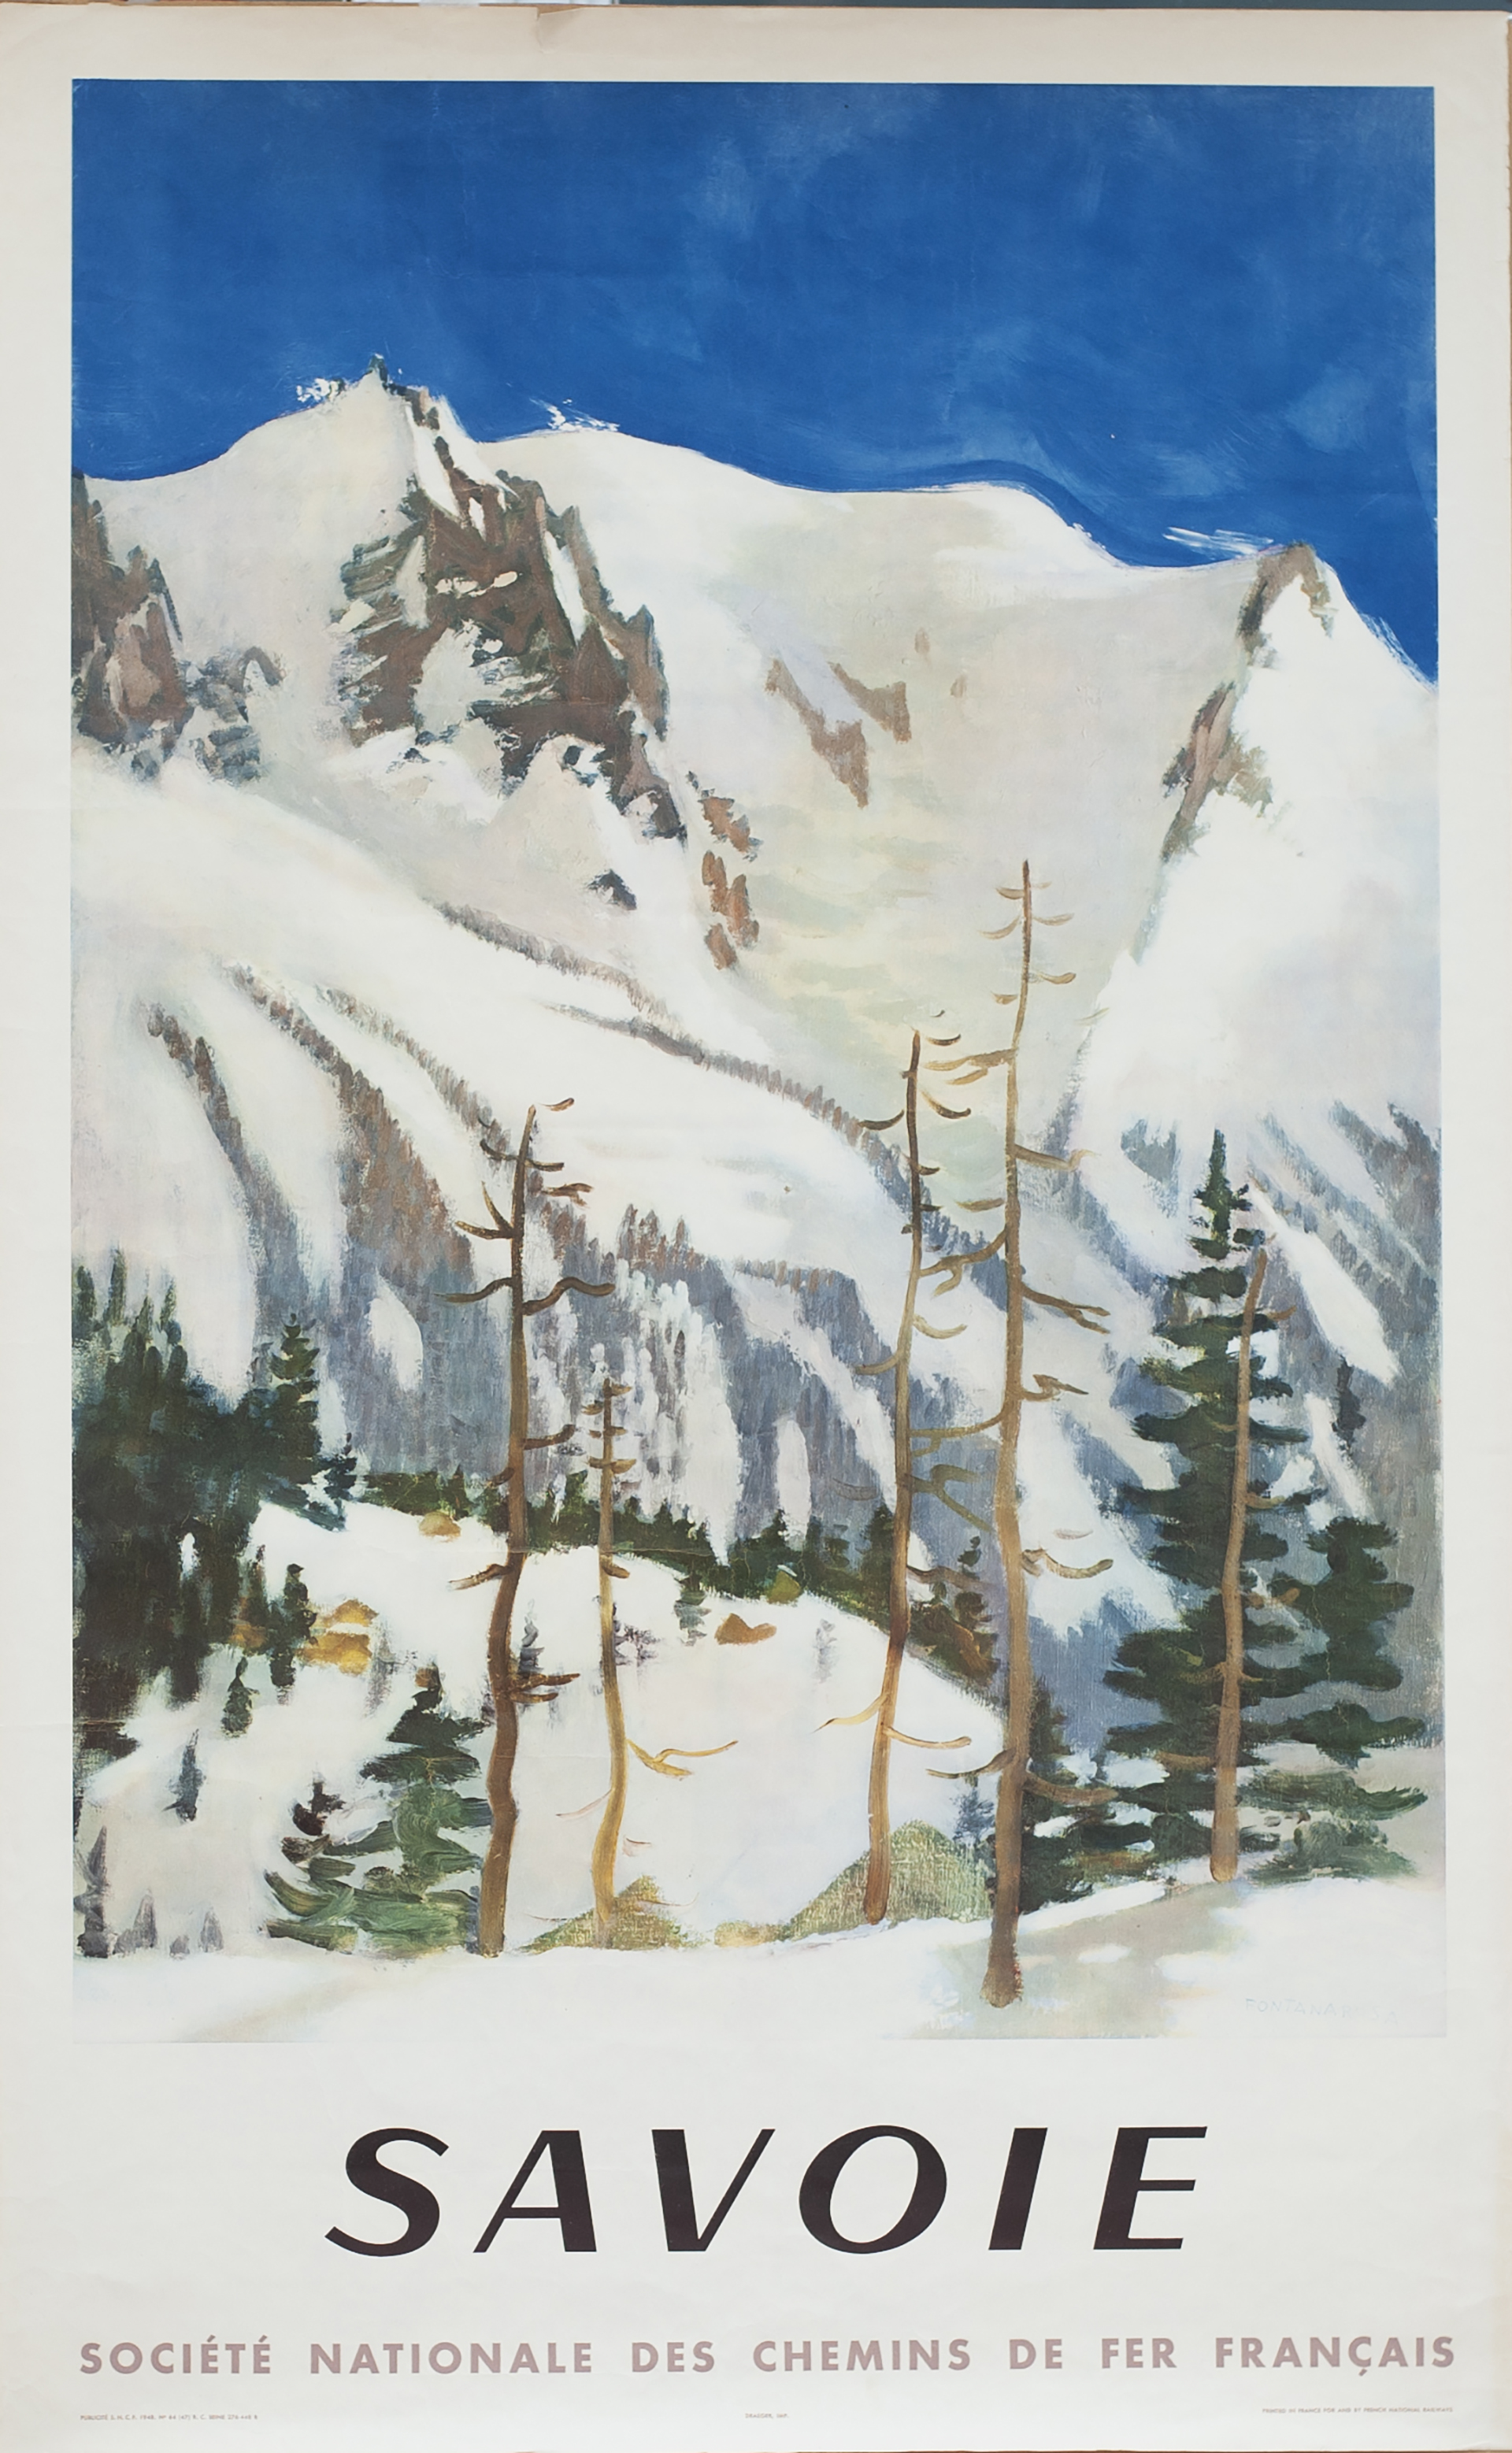 Poster SNCF SAVOIE by Fontanarosa published in 1948. Double Royal 25in x 40in. In very good